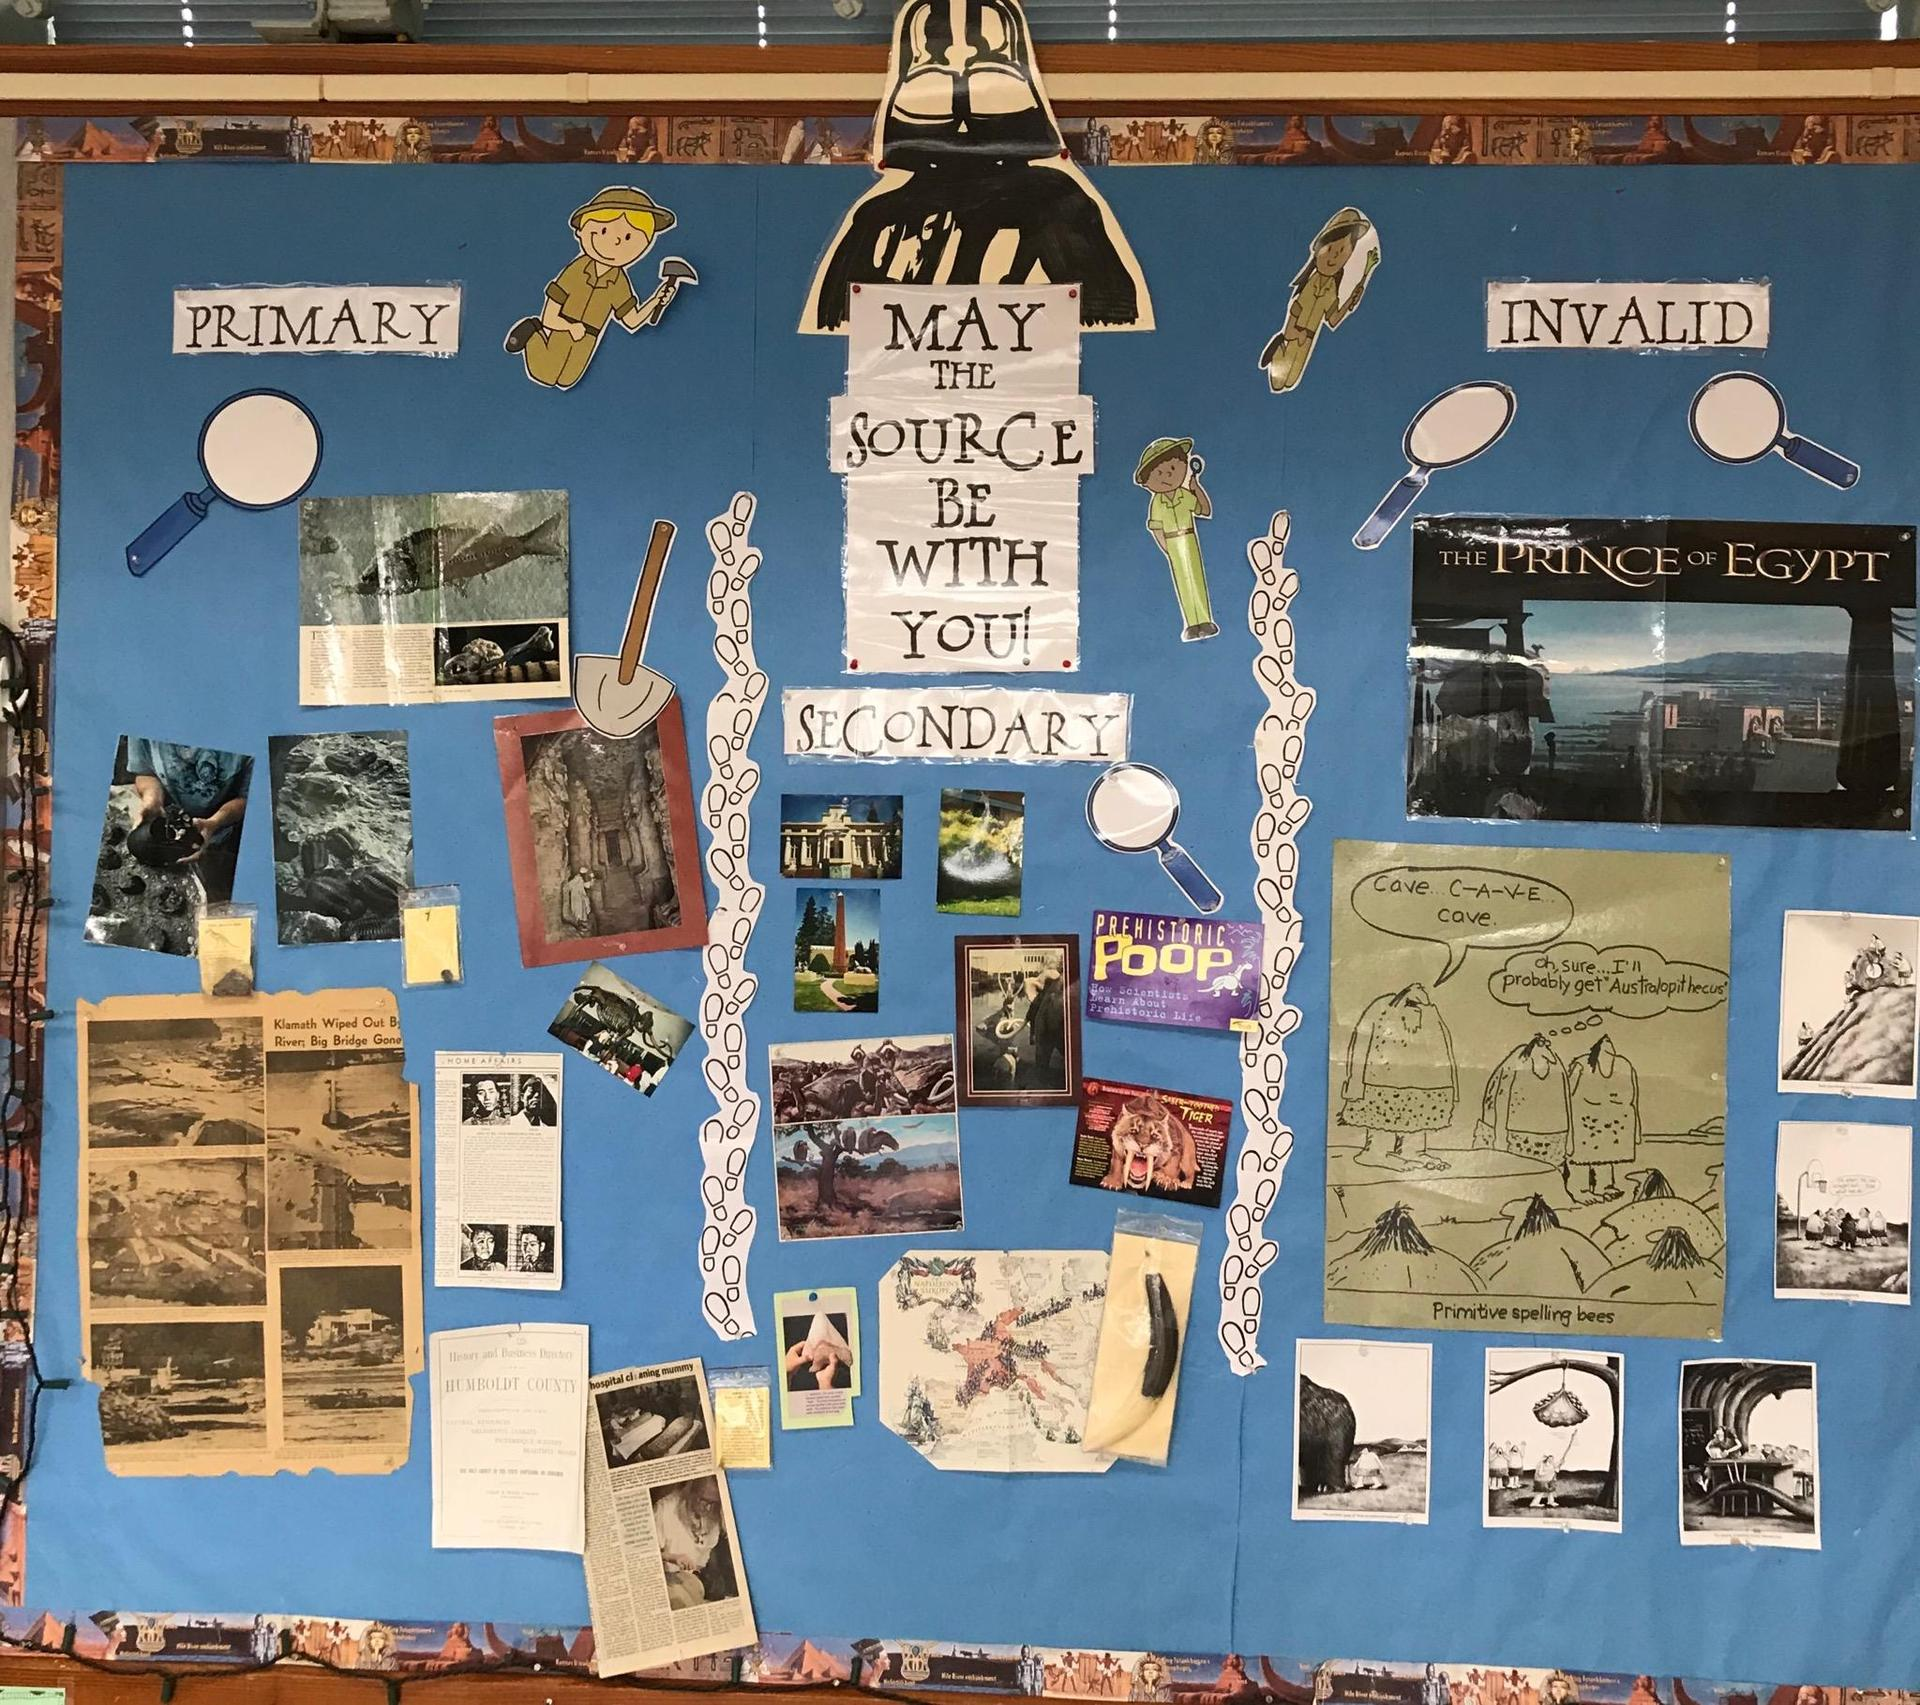 May the Source Be With You bulletin board shows students the difference between primary and secondary sources.